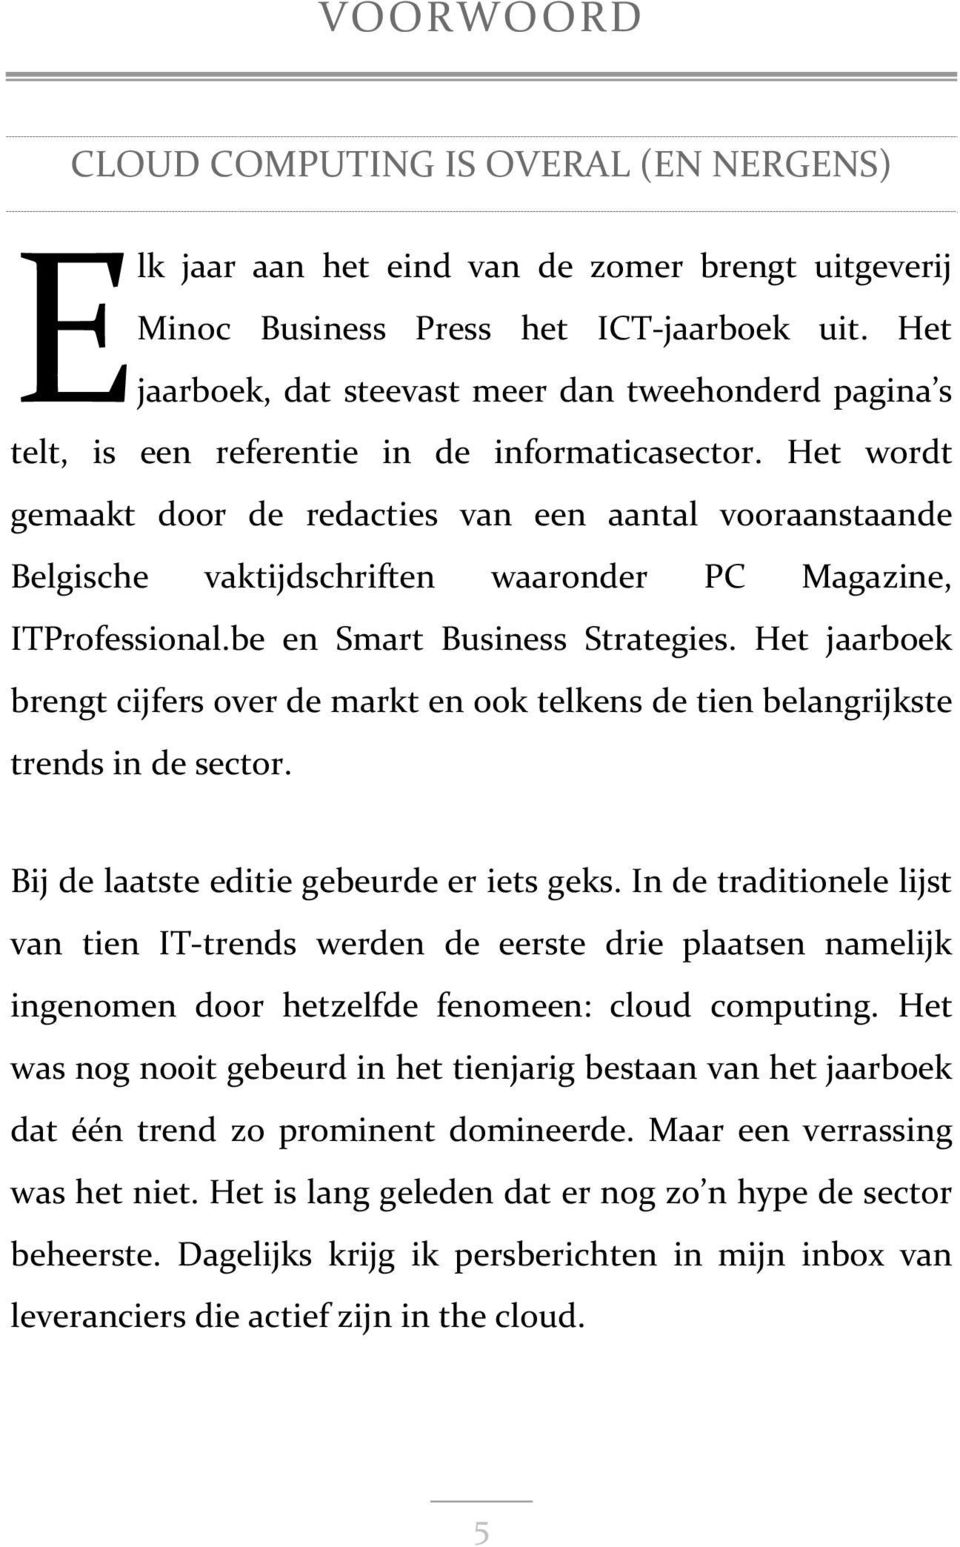 Het wordt gemaakt door de redacties van een aantal vooraanstaande Belgische vaktijdschriften waaronder PC Magazine, ITProfessional.be en Smart Business Strategies.